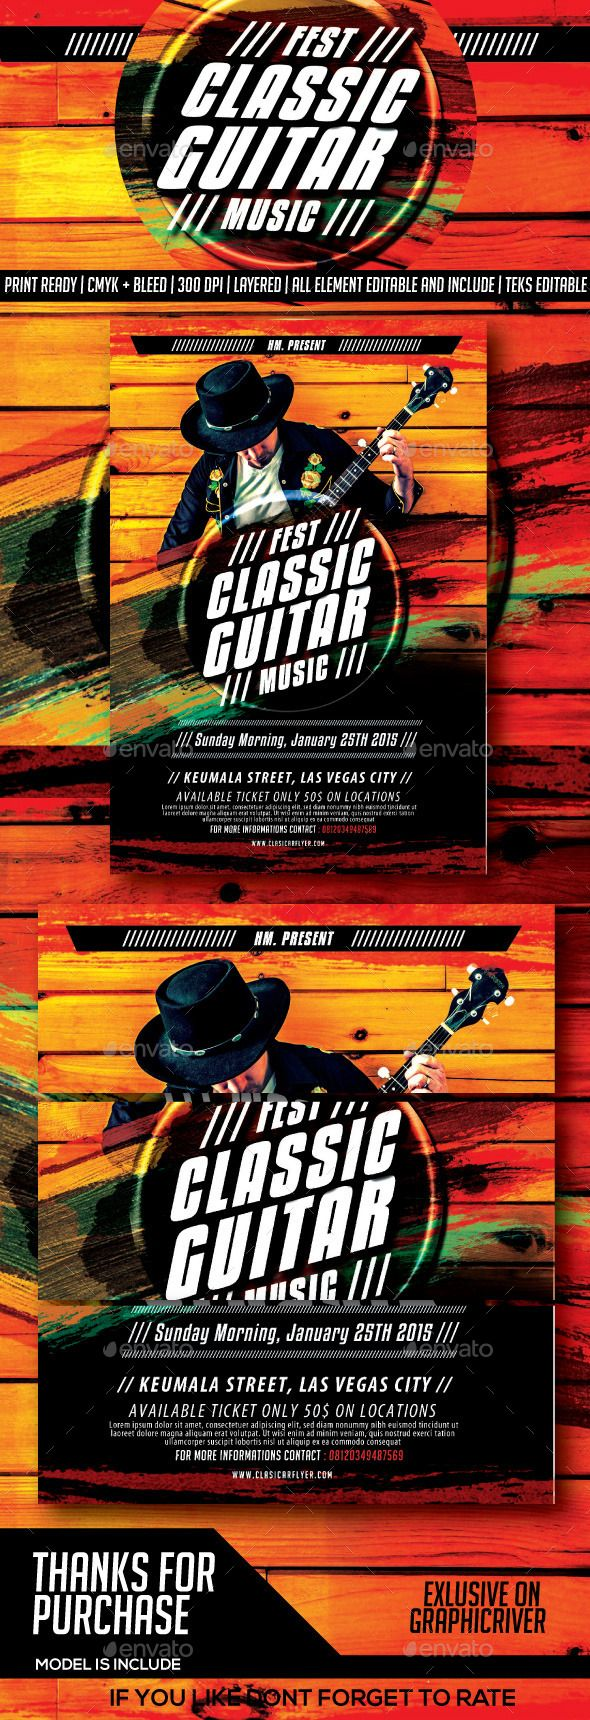 Classical Guitar Festival Music Flyer